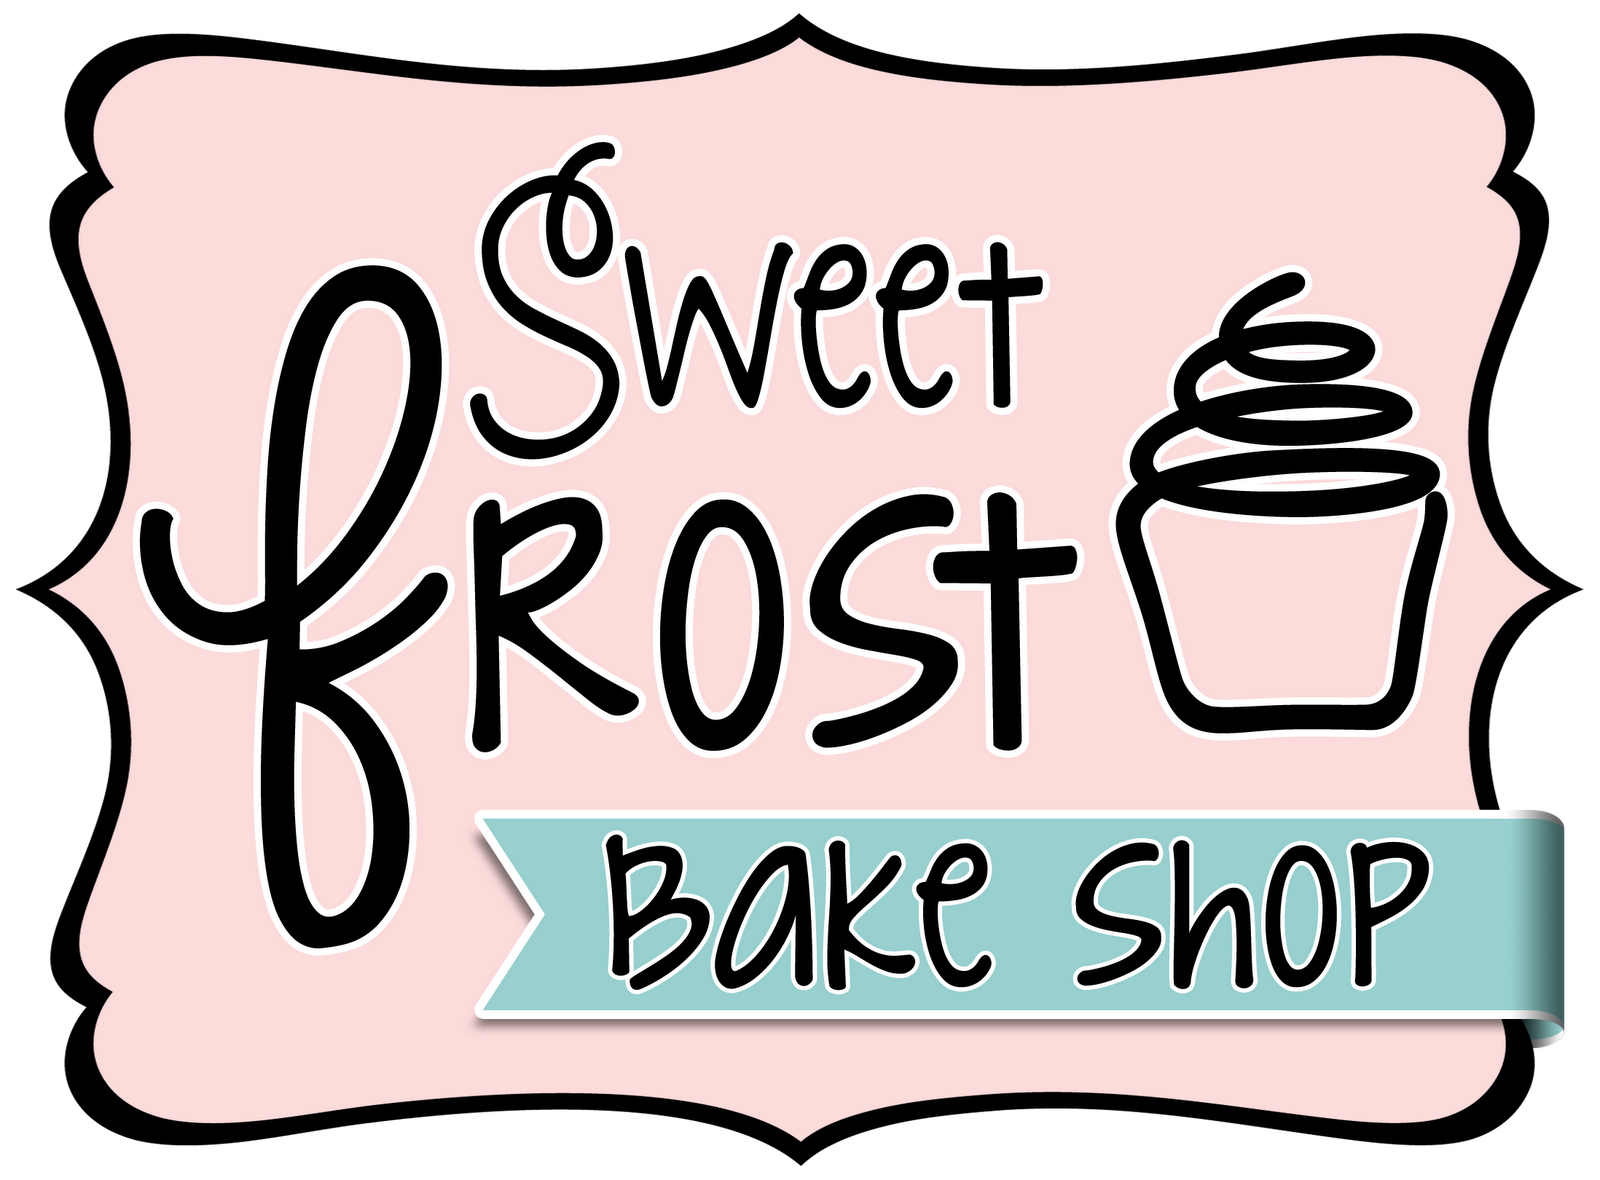 Free clip art viewing. Shop clipart bakery